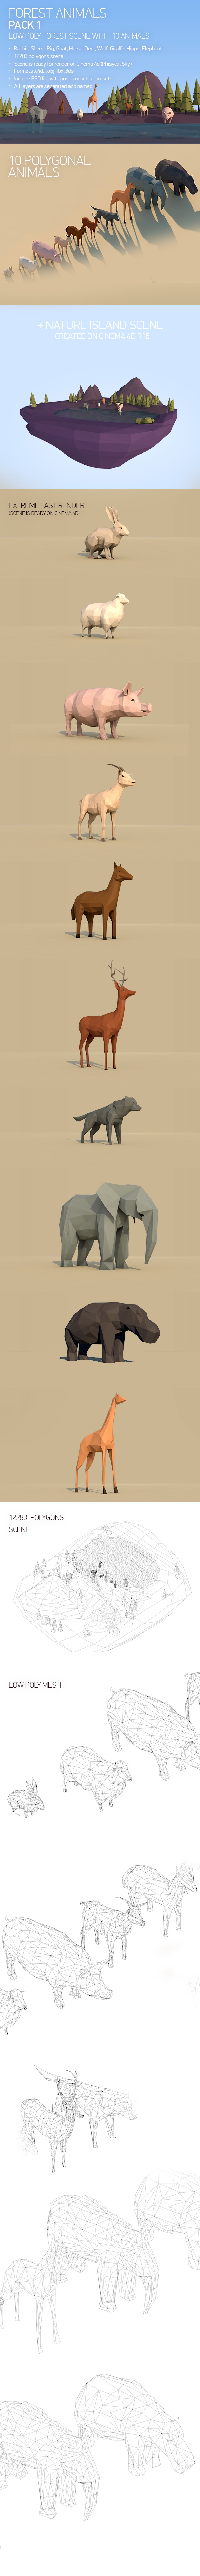 Low Poly Forest Animals Pack 1 - 3DOcean Item for Sale